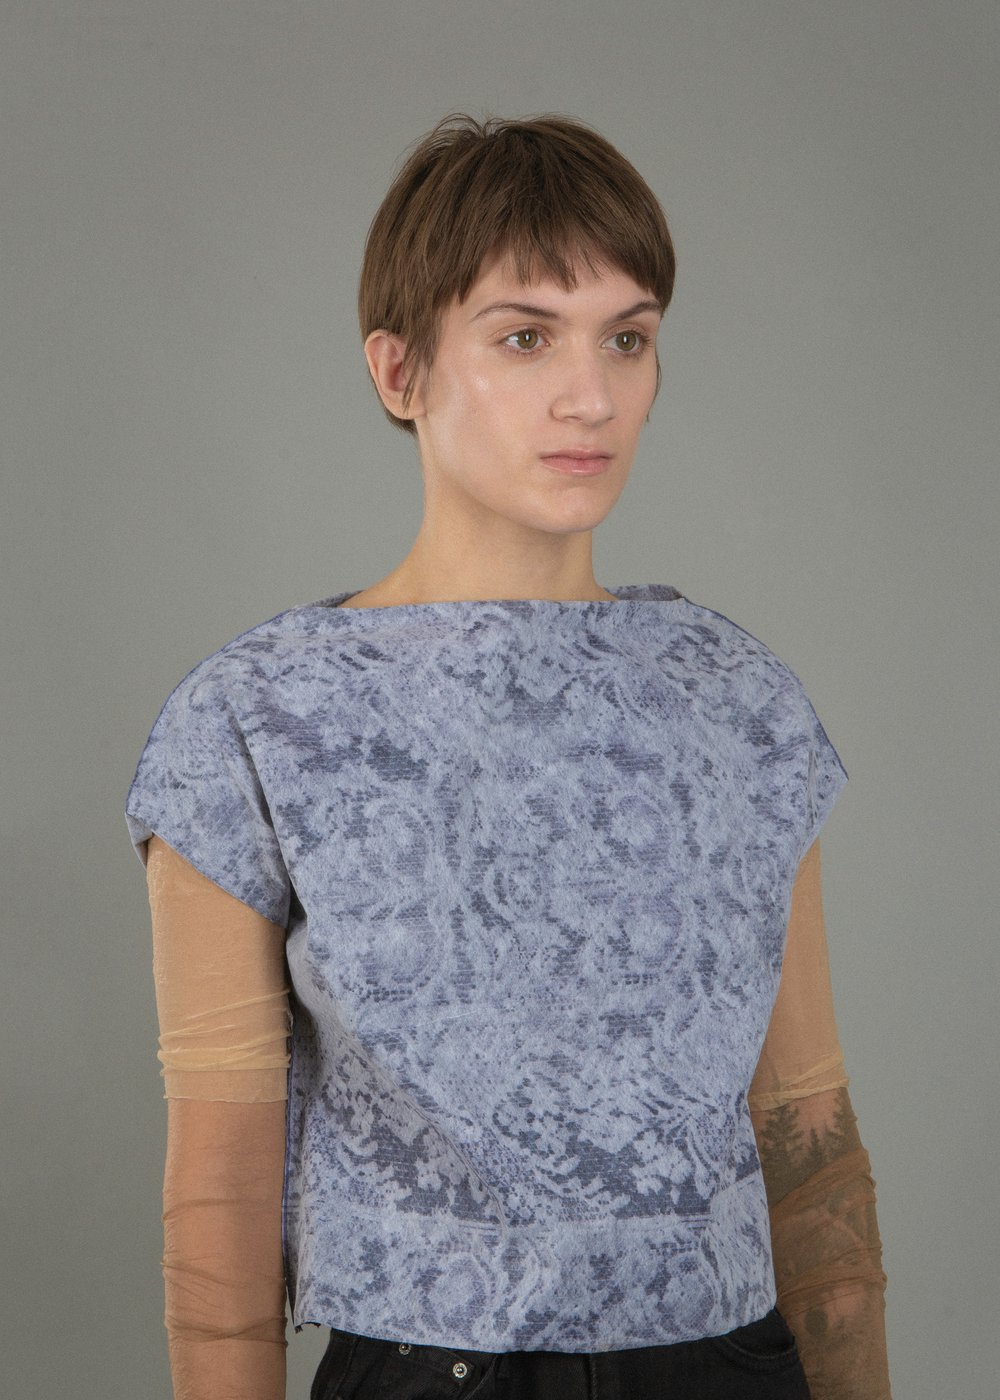 A woman wearing a shirt with a laser cut floral pattern